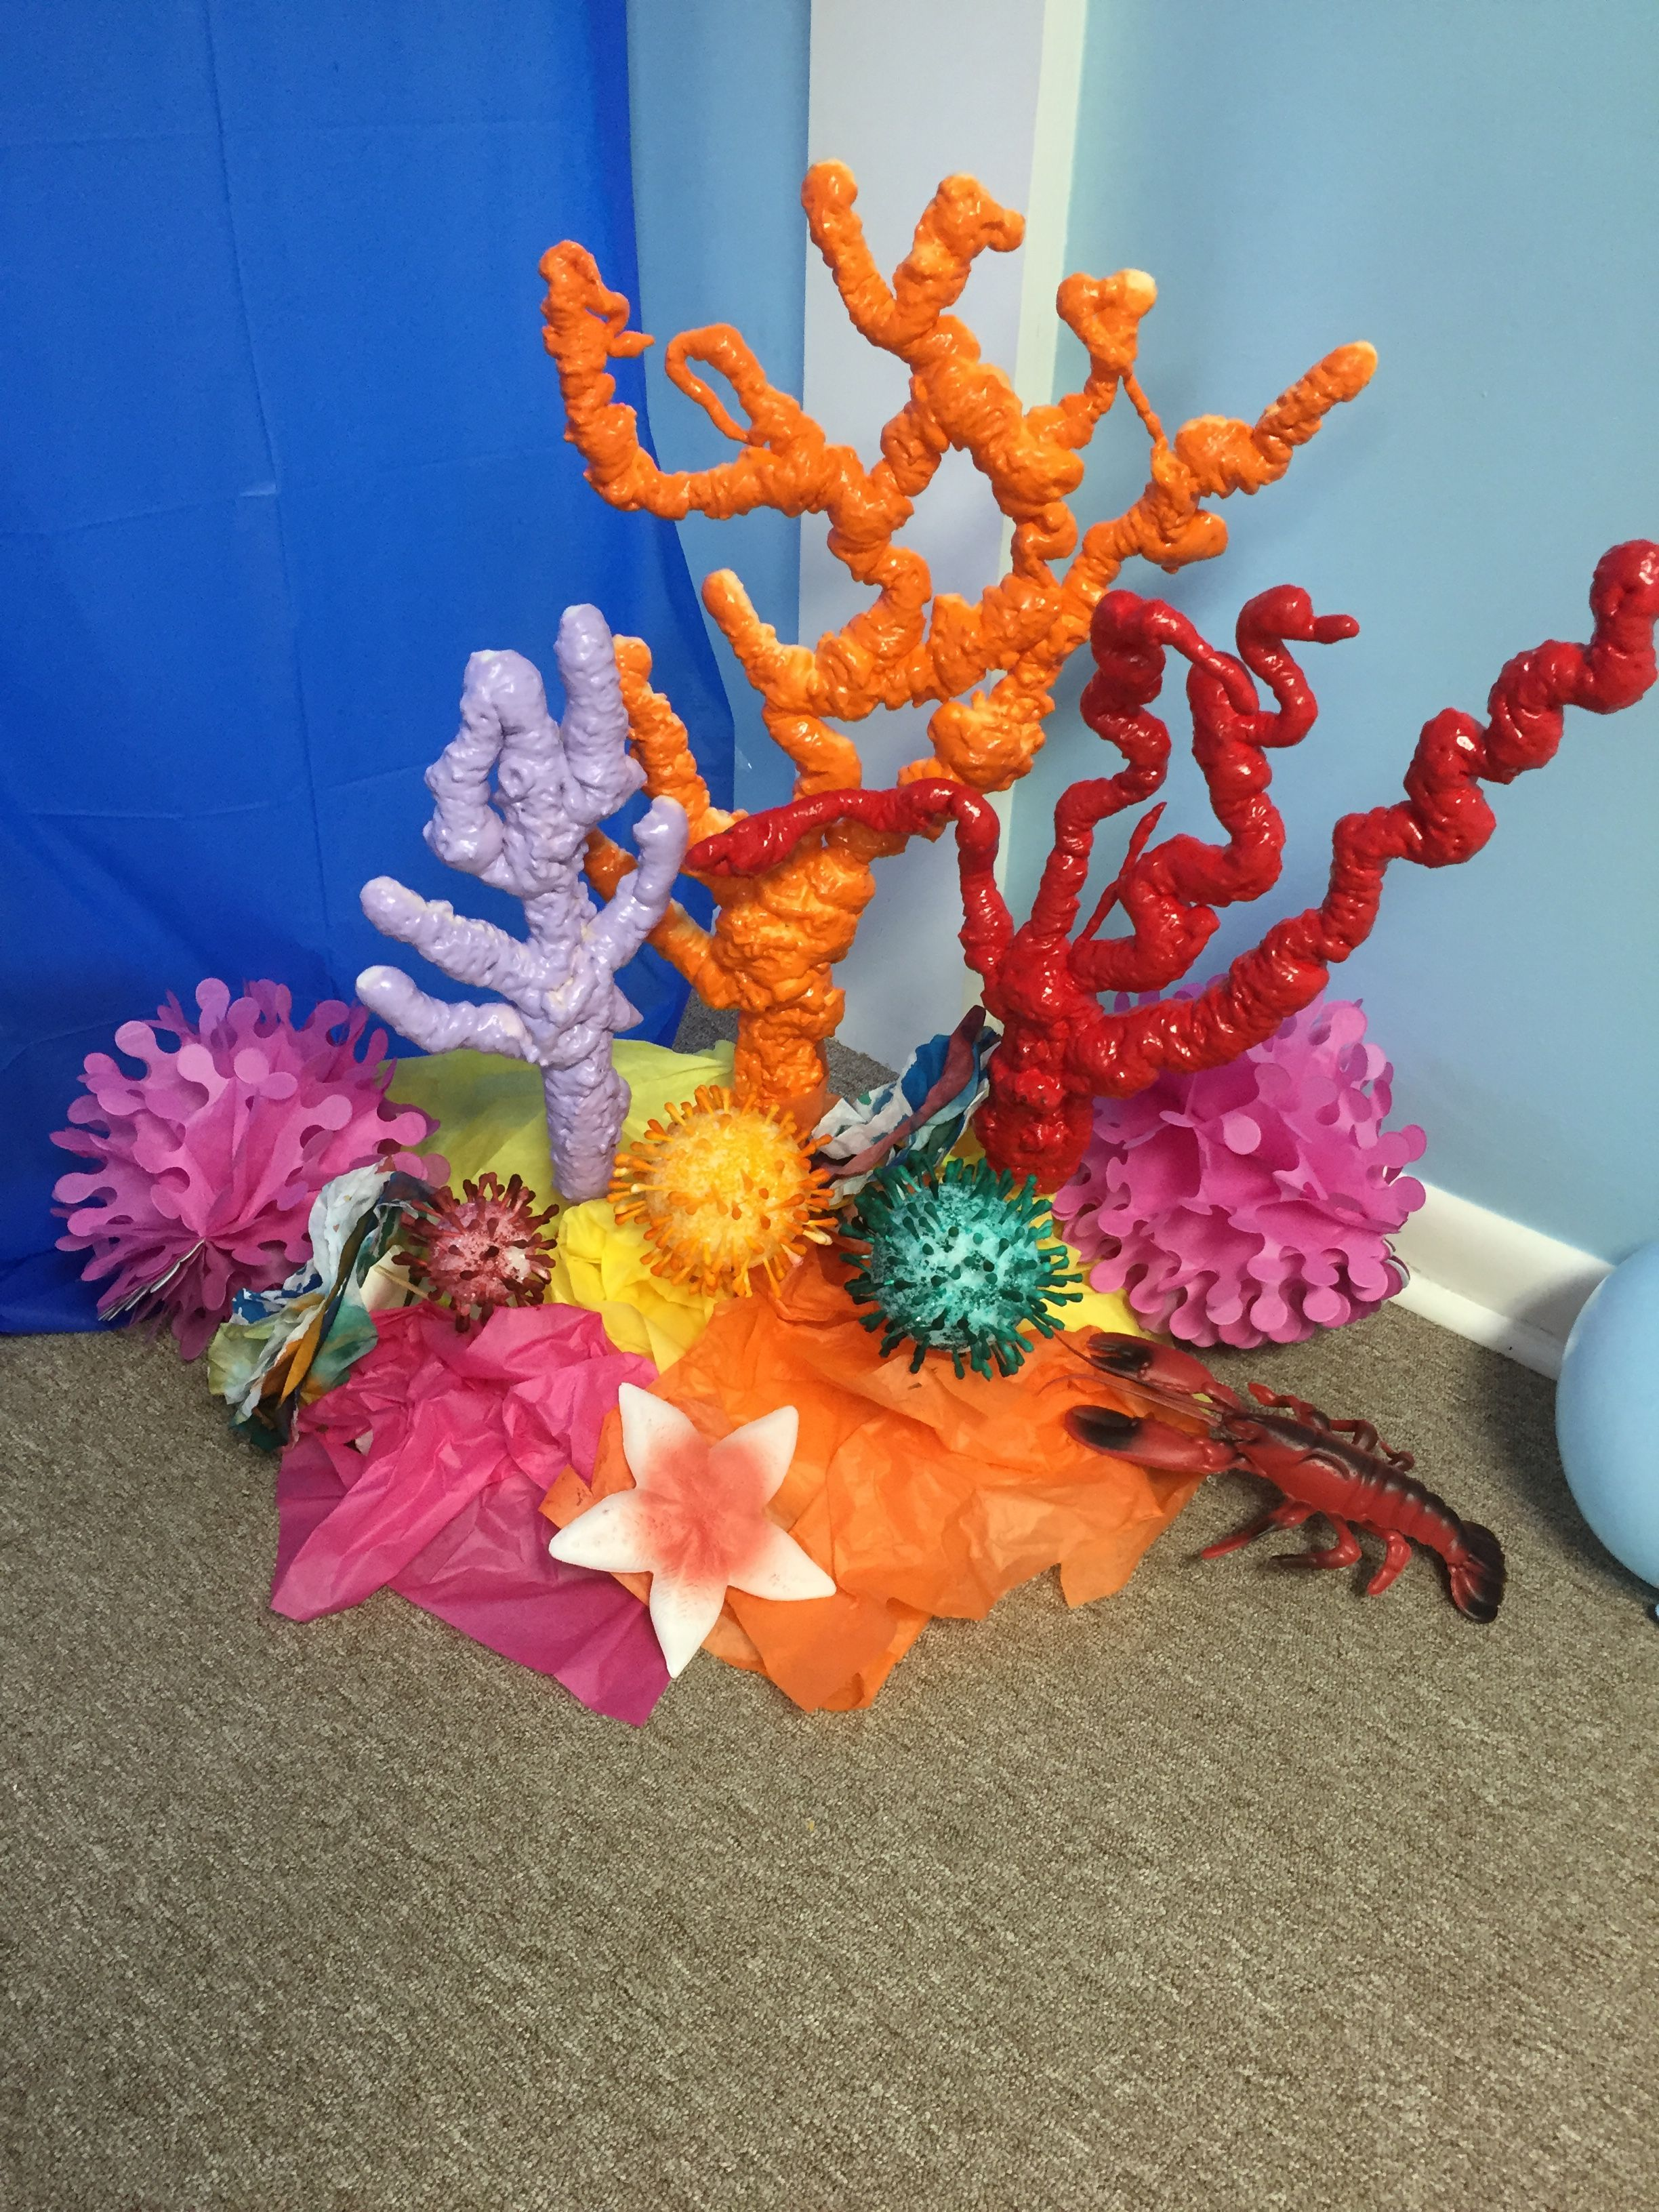 UNDER THE SEA OCEAN CORAL REEF TABLE CENTREPIECE PARTY DECORATION